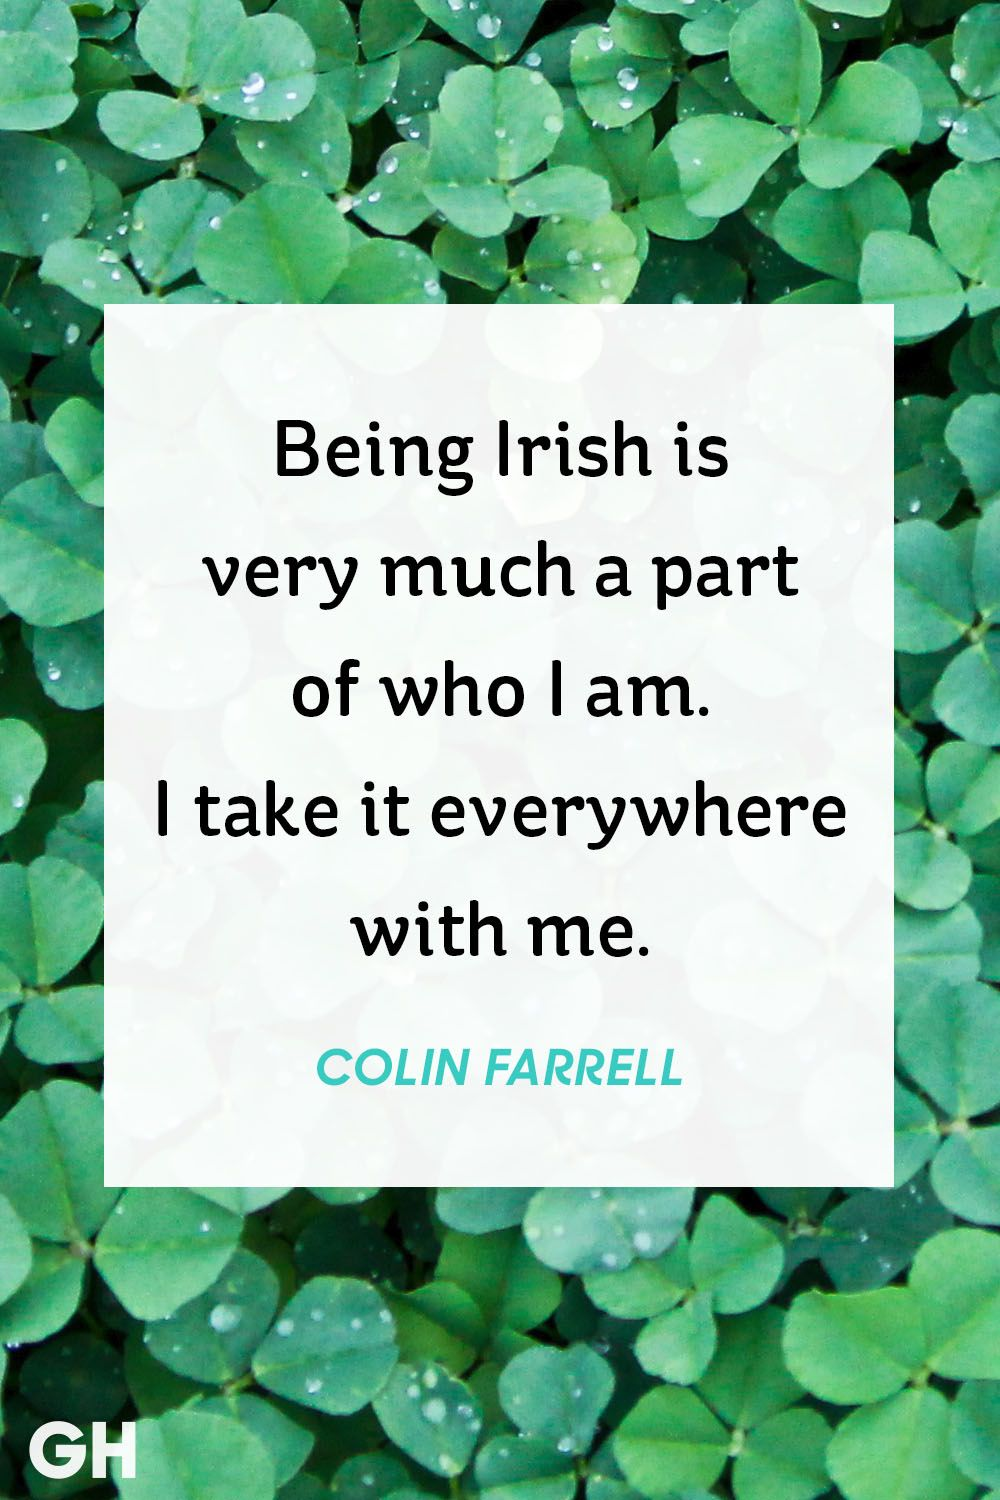 colin farrell st patrick's day quote